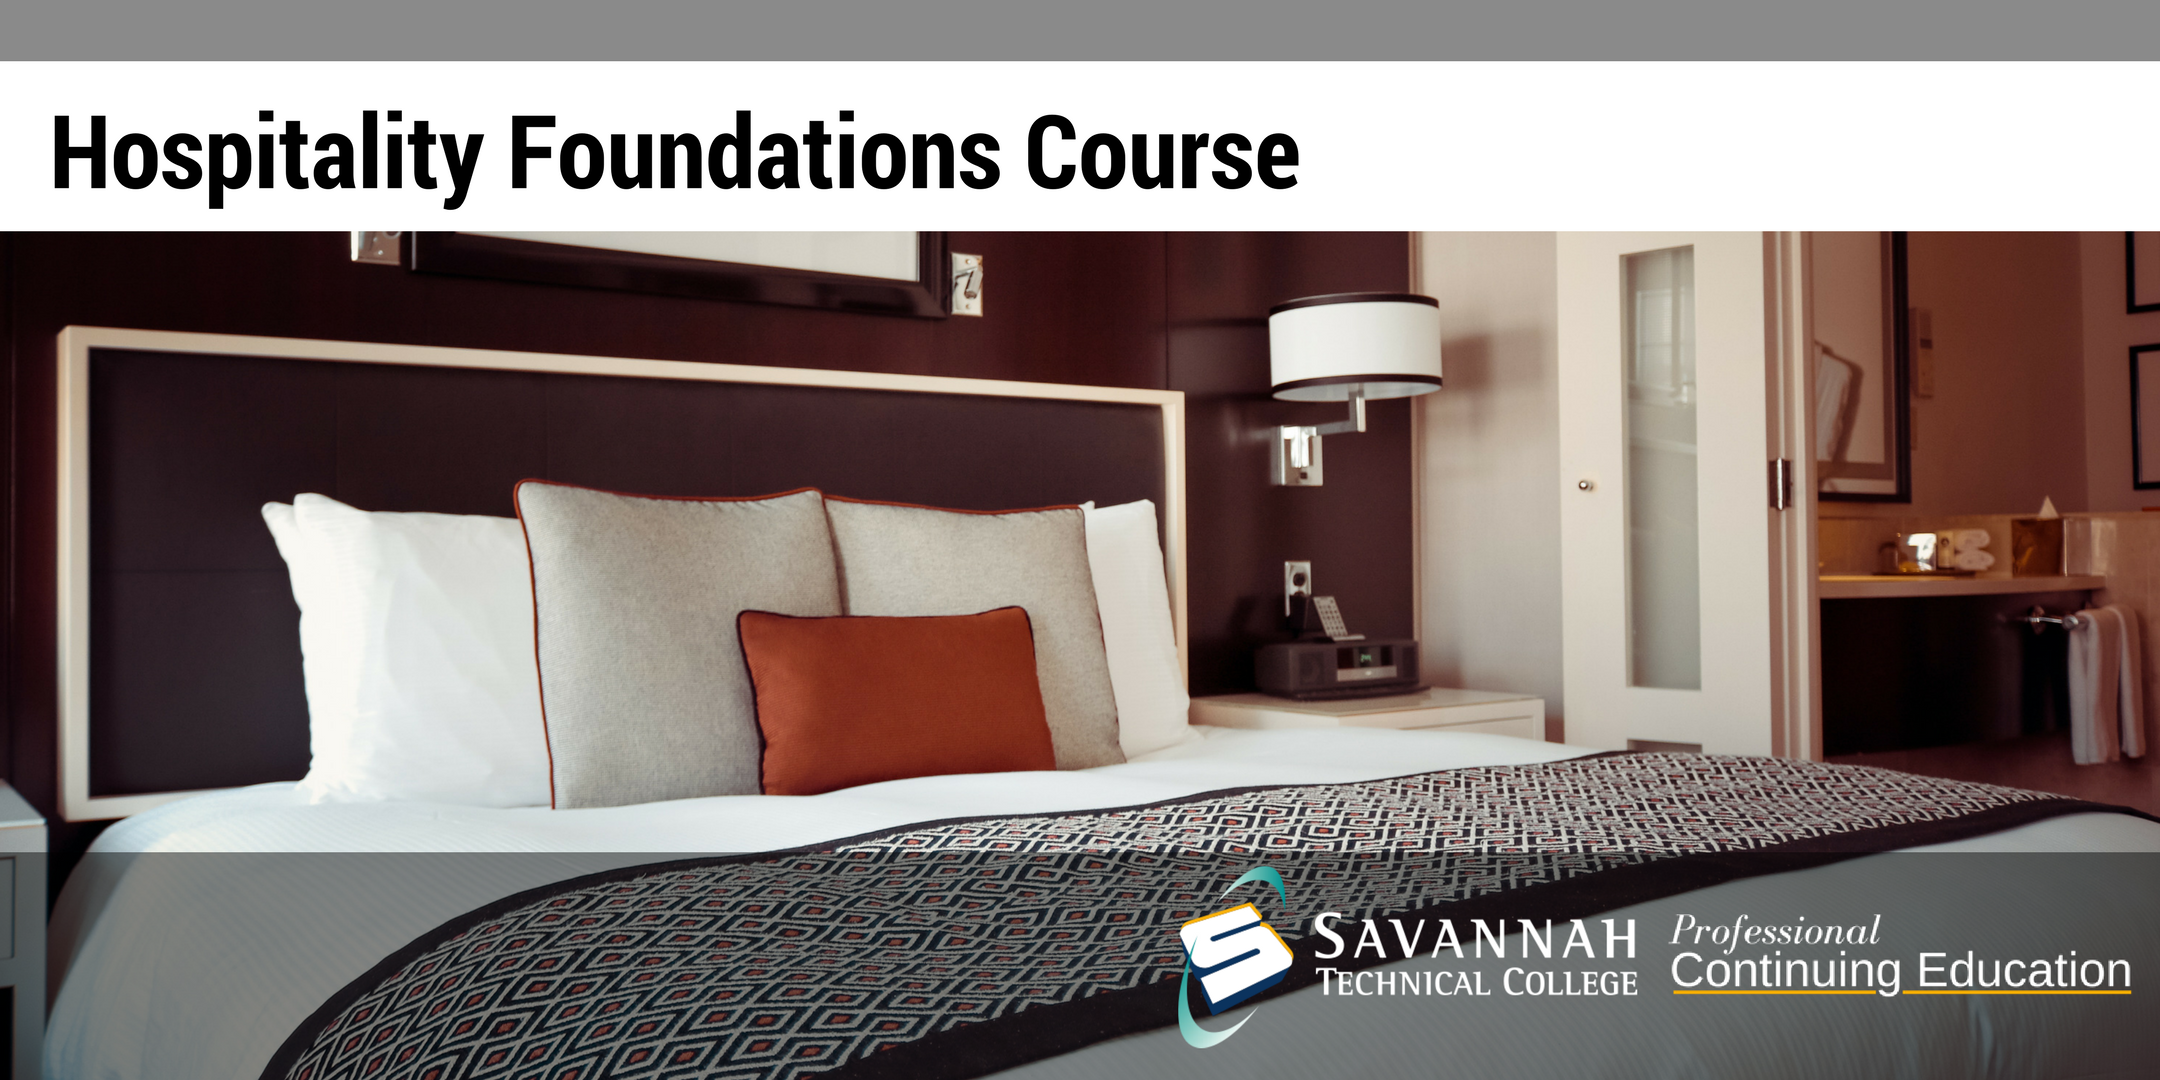 Hospitality Foundations Course